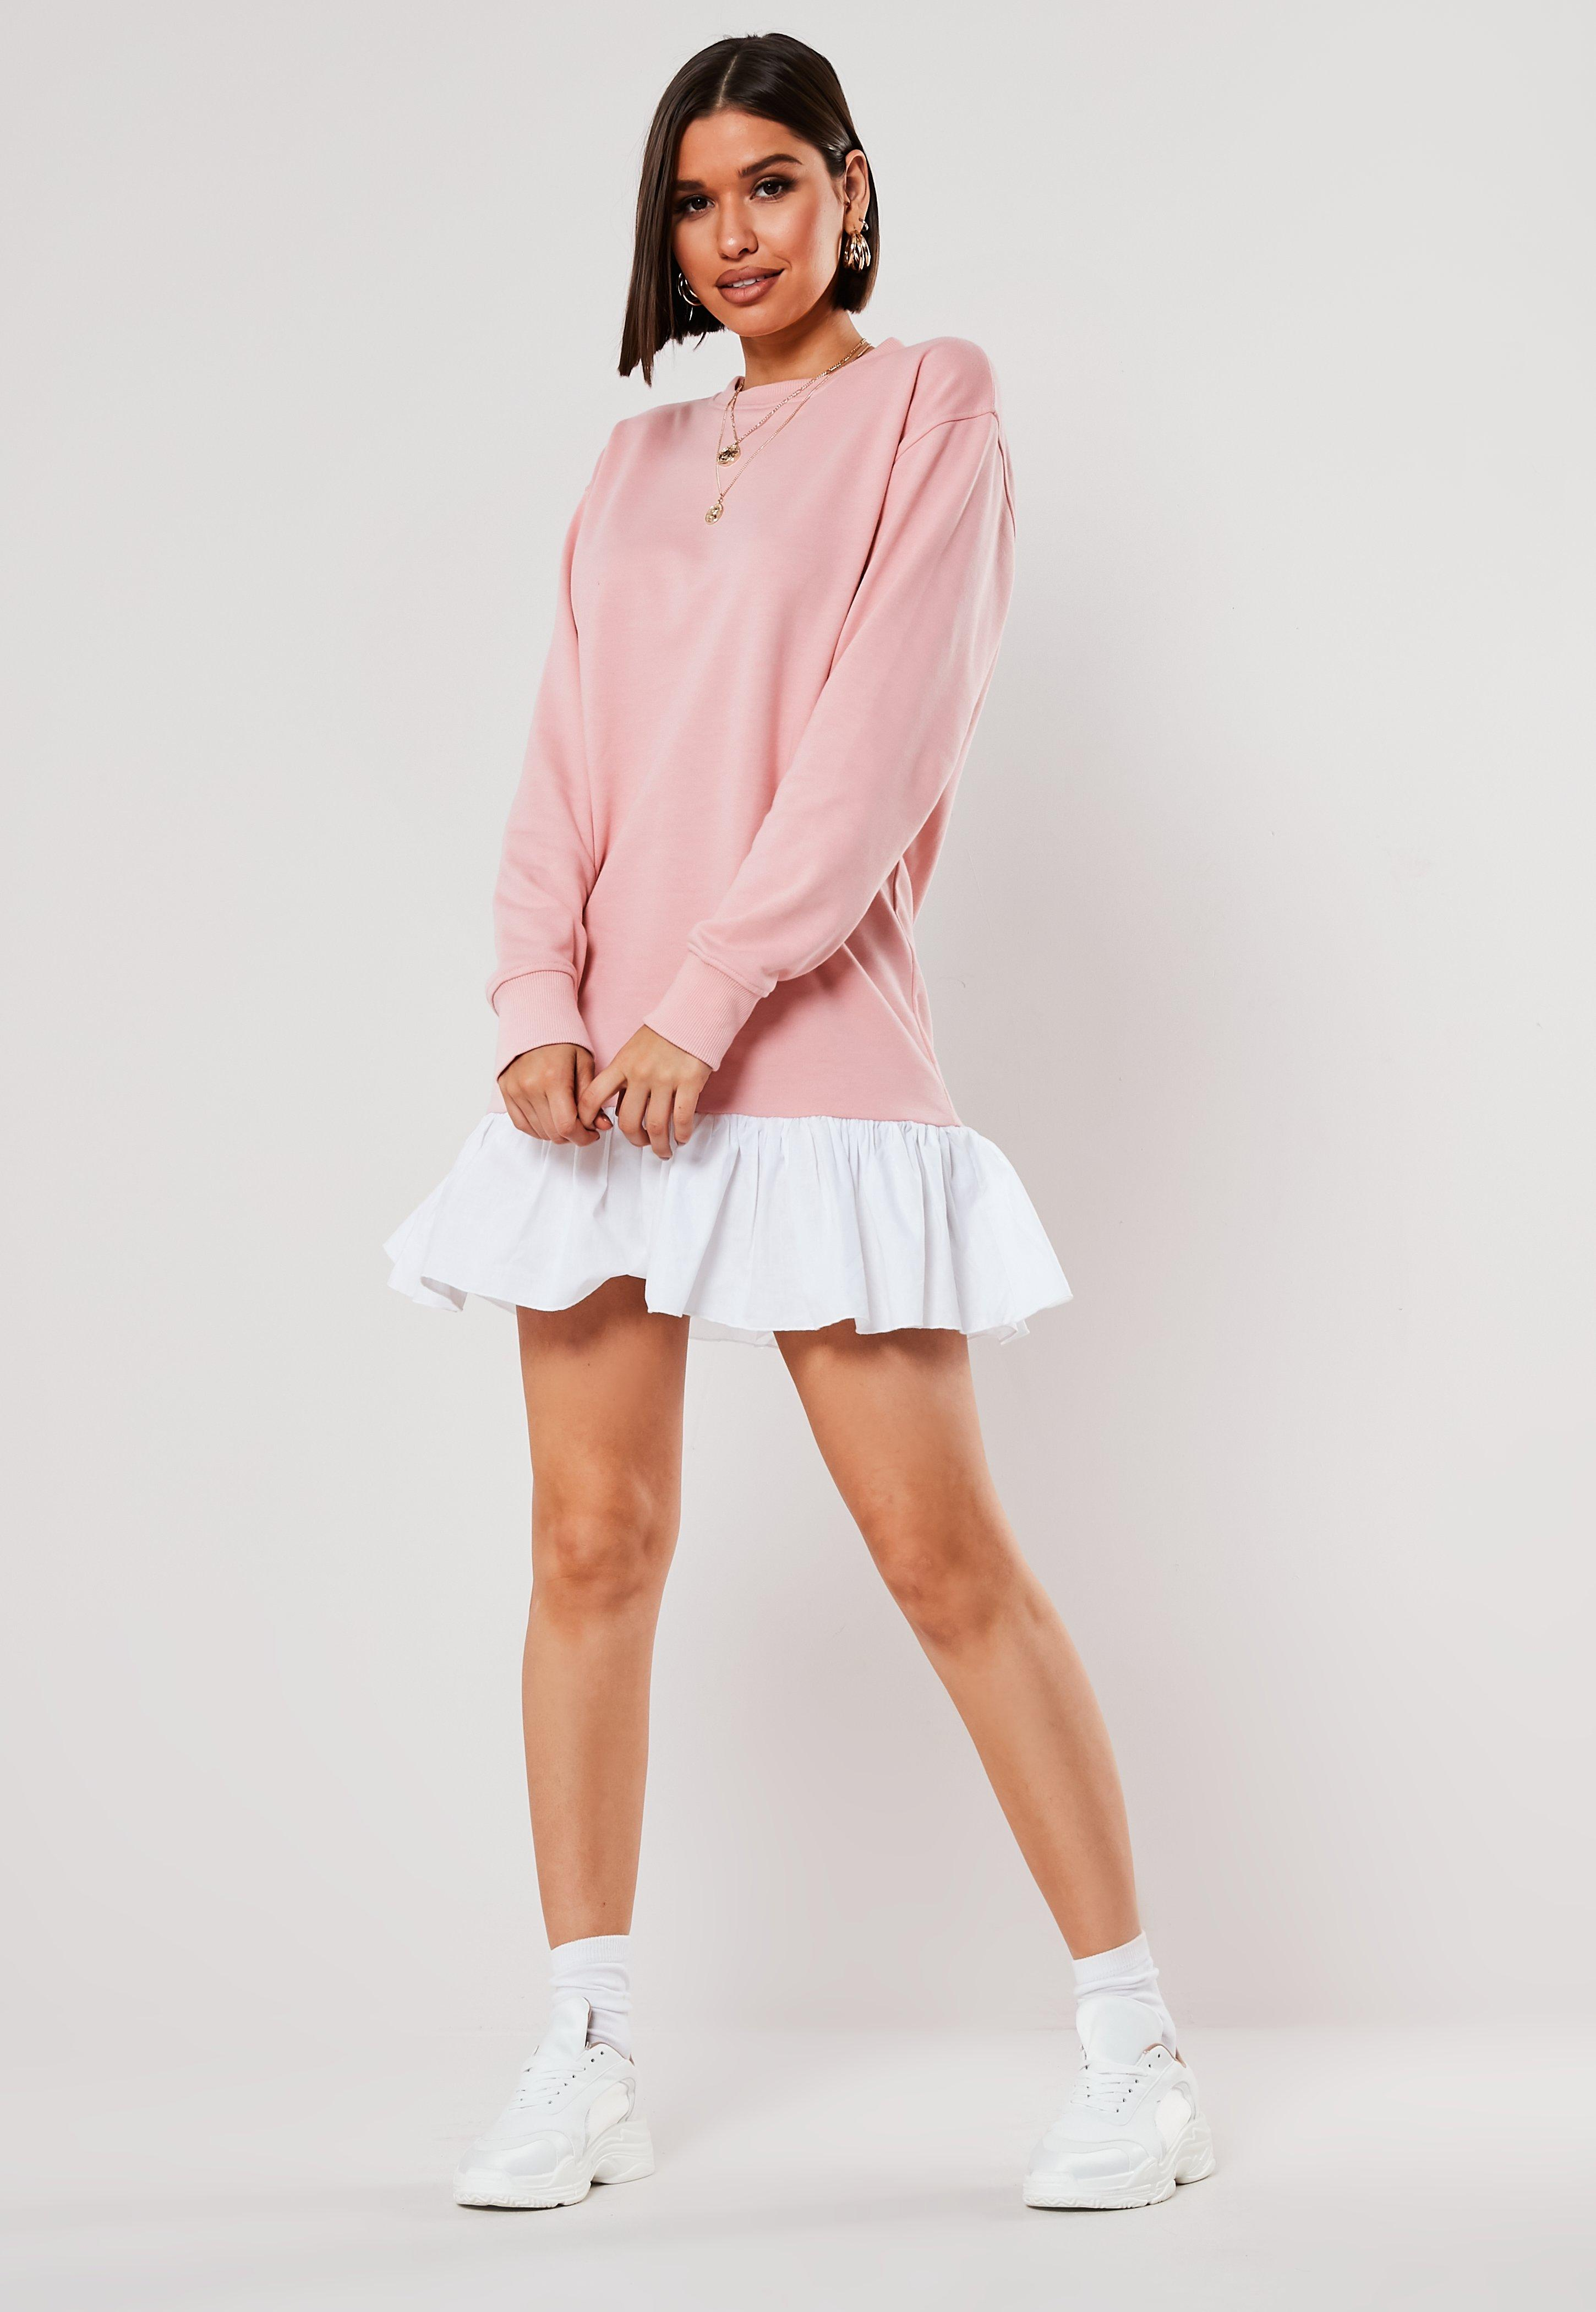 a846a878d150e Frills | Women's Frilled Clothes - Missguided Ireland